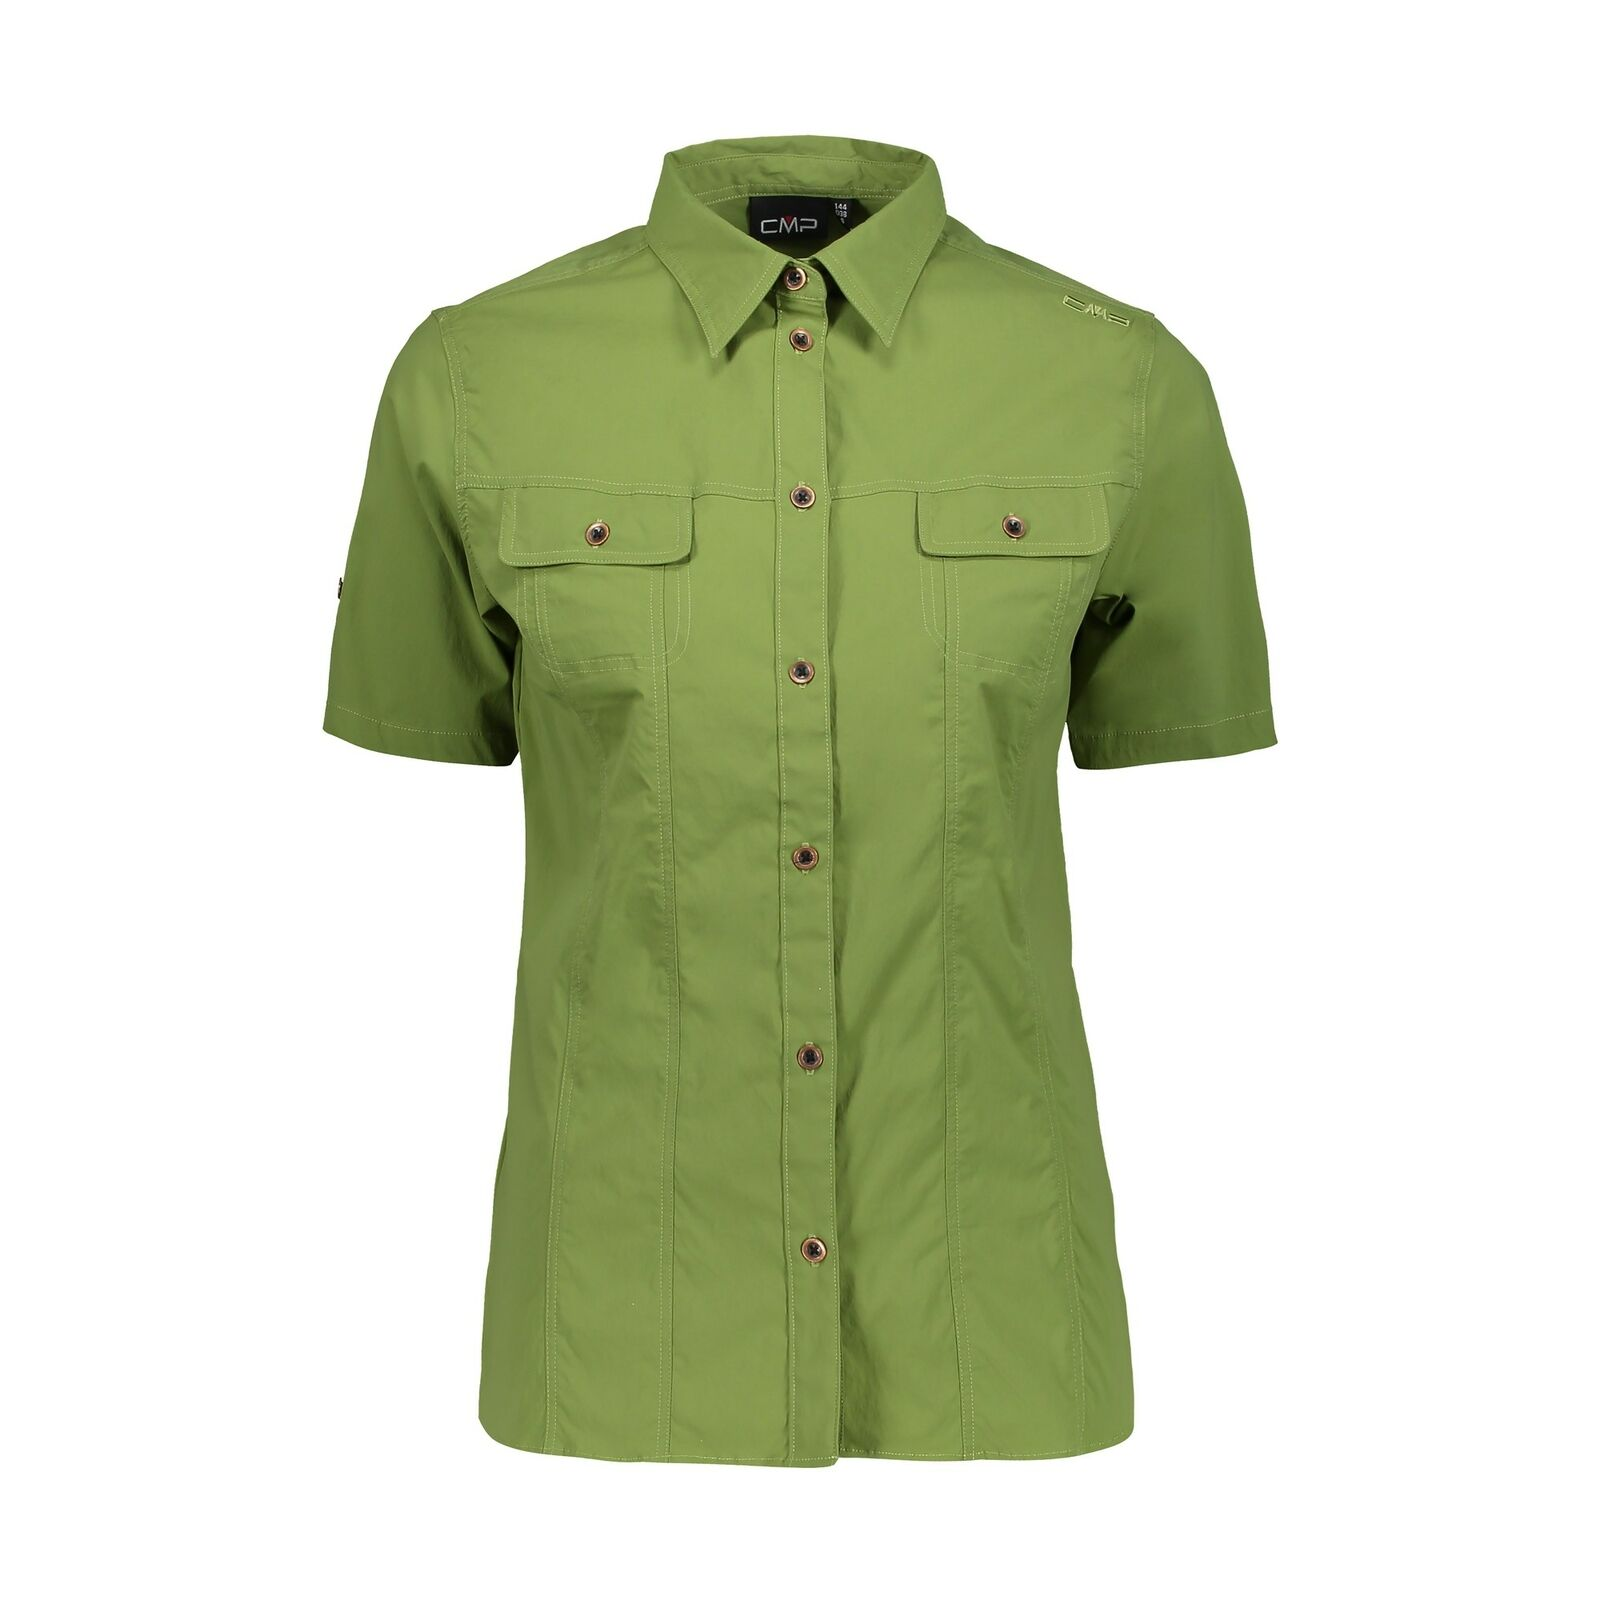 CMP Outdoor Blouse Blouse Woman Shirt Green Breathable Elastic uv  Predection  novelty items